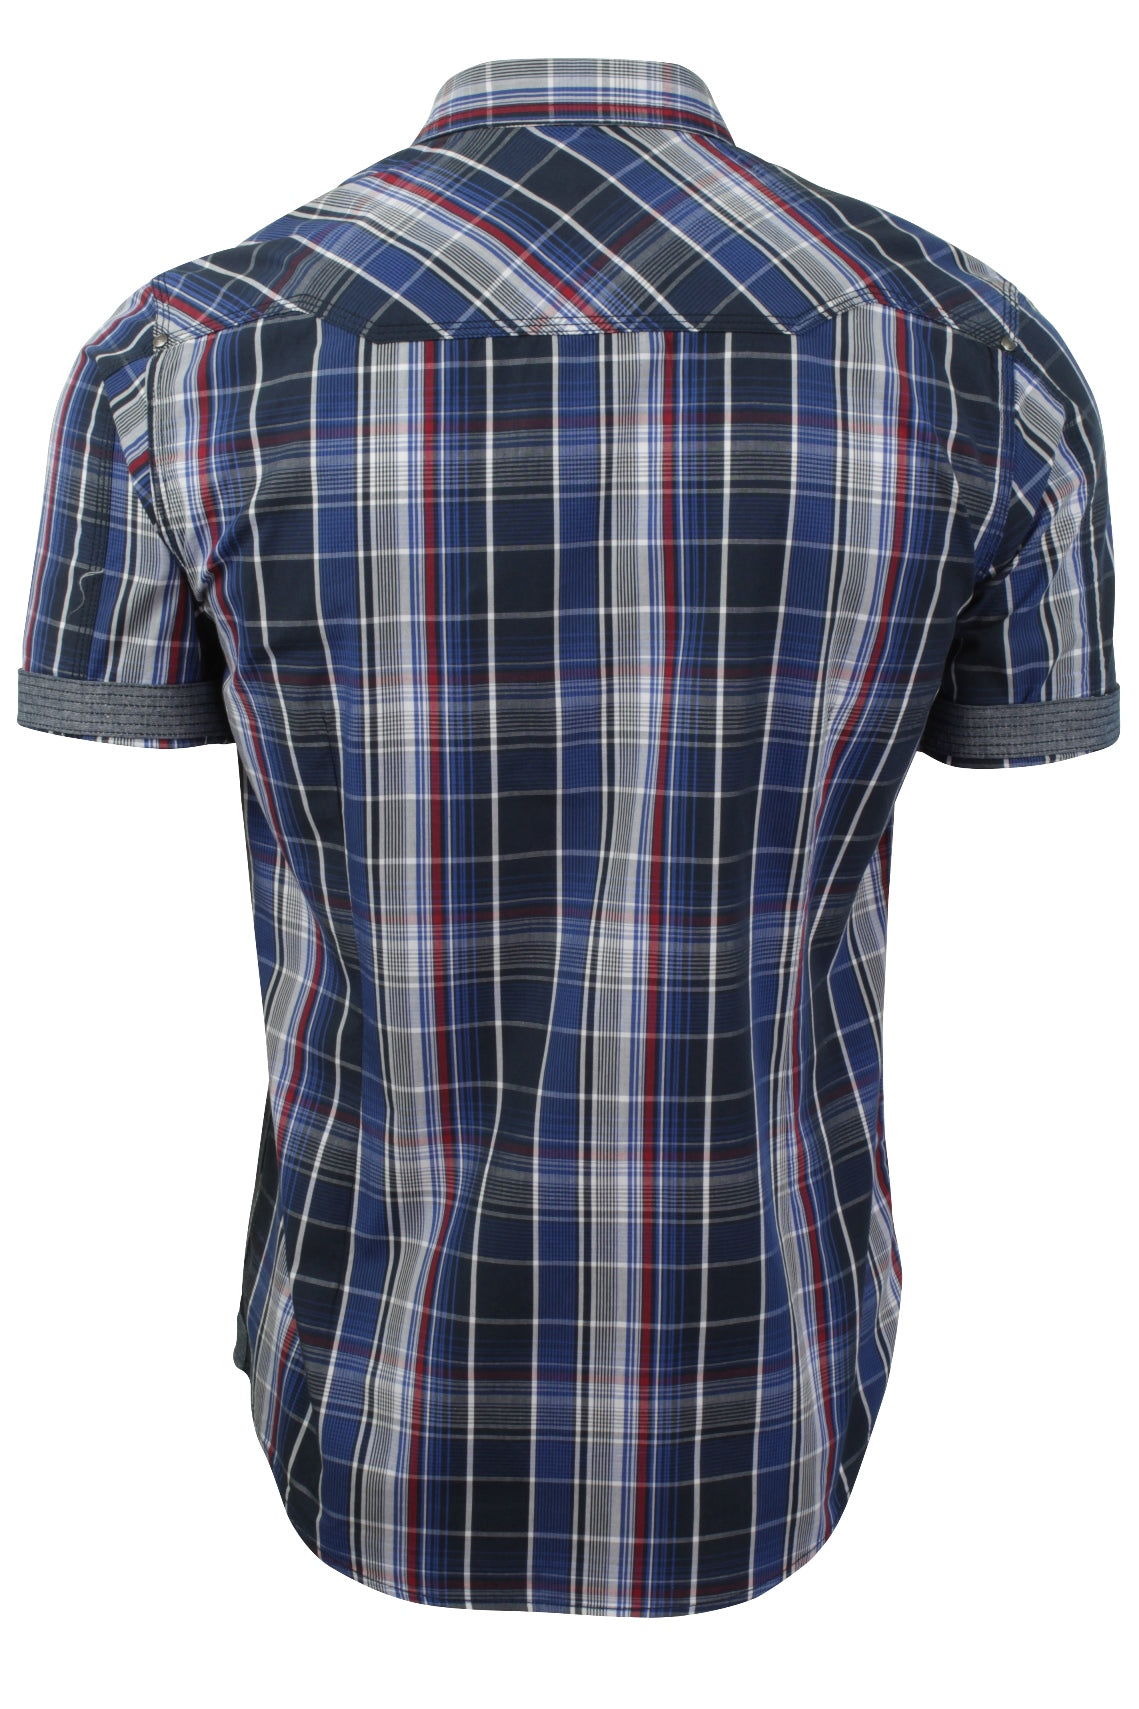 Mens Check Shirt by Dissident 'Valencia' Short Sleeved-3